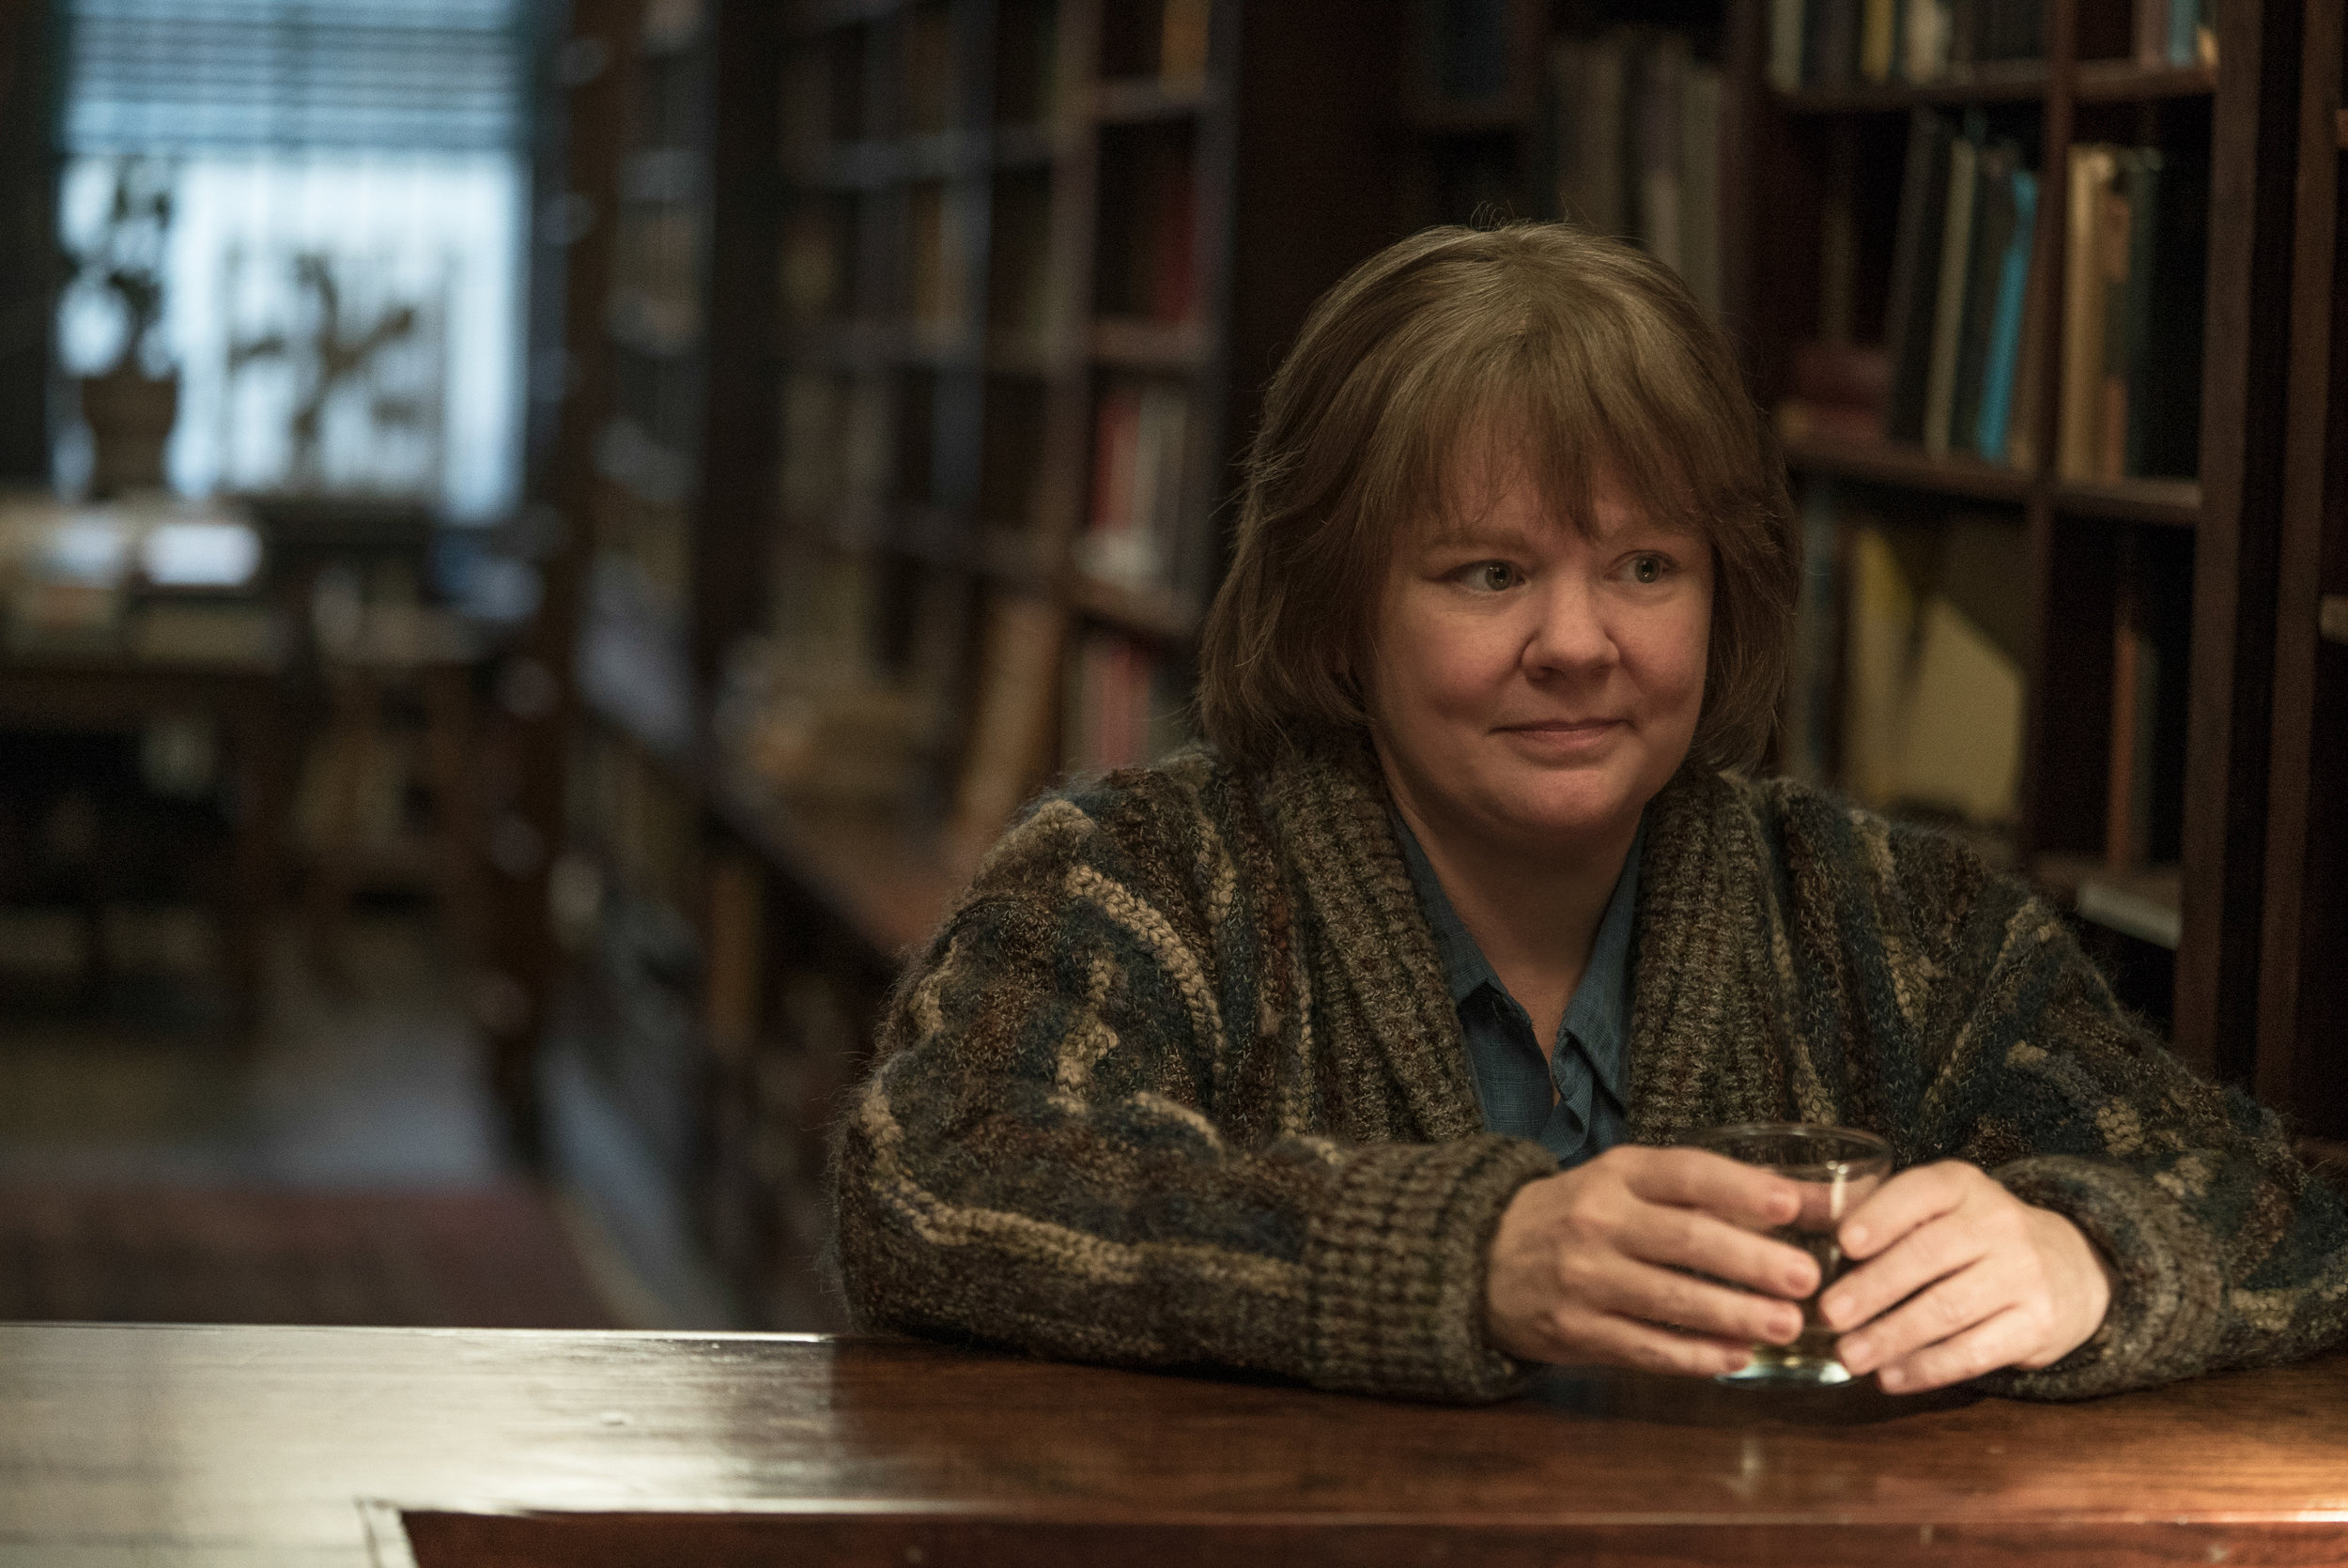 Melissa McCarthy in Can You Ever Forgive Me? Photo by Mary Cybulski. © 2018 Twentieth Century Fox Film Corporation All Rights Reserved